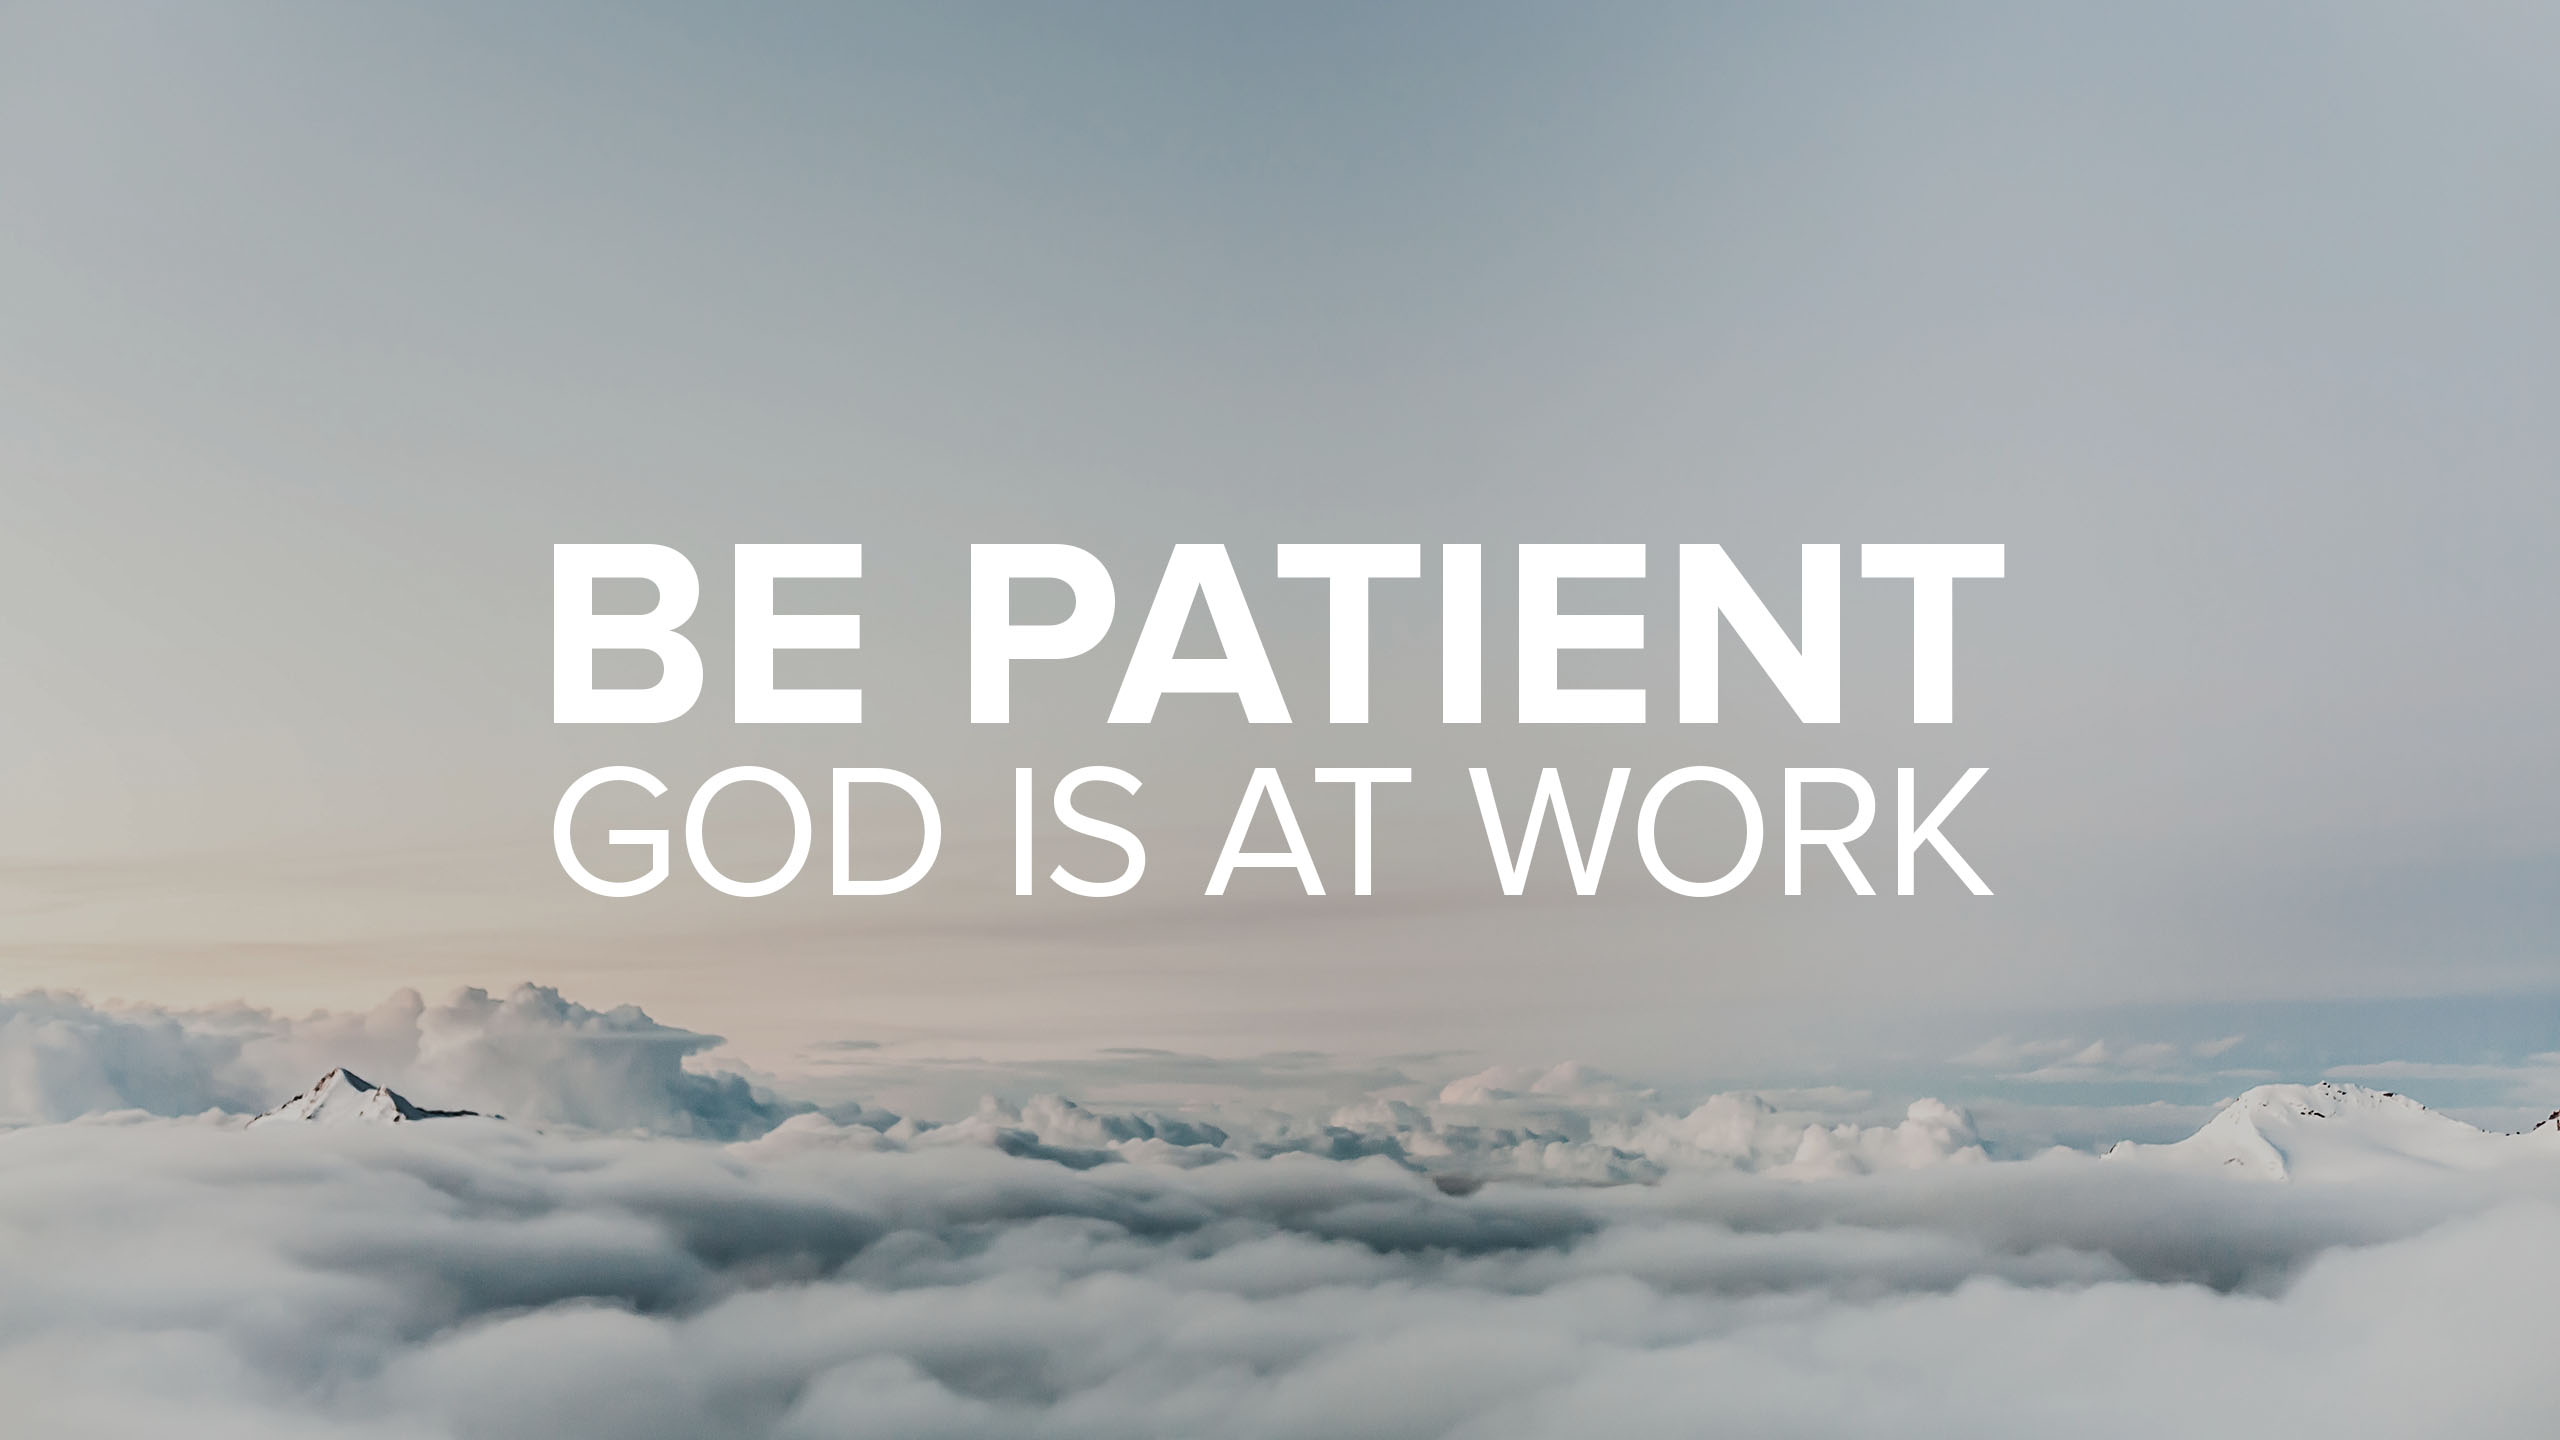 Be patient - Christian news, views and interviews